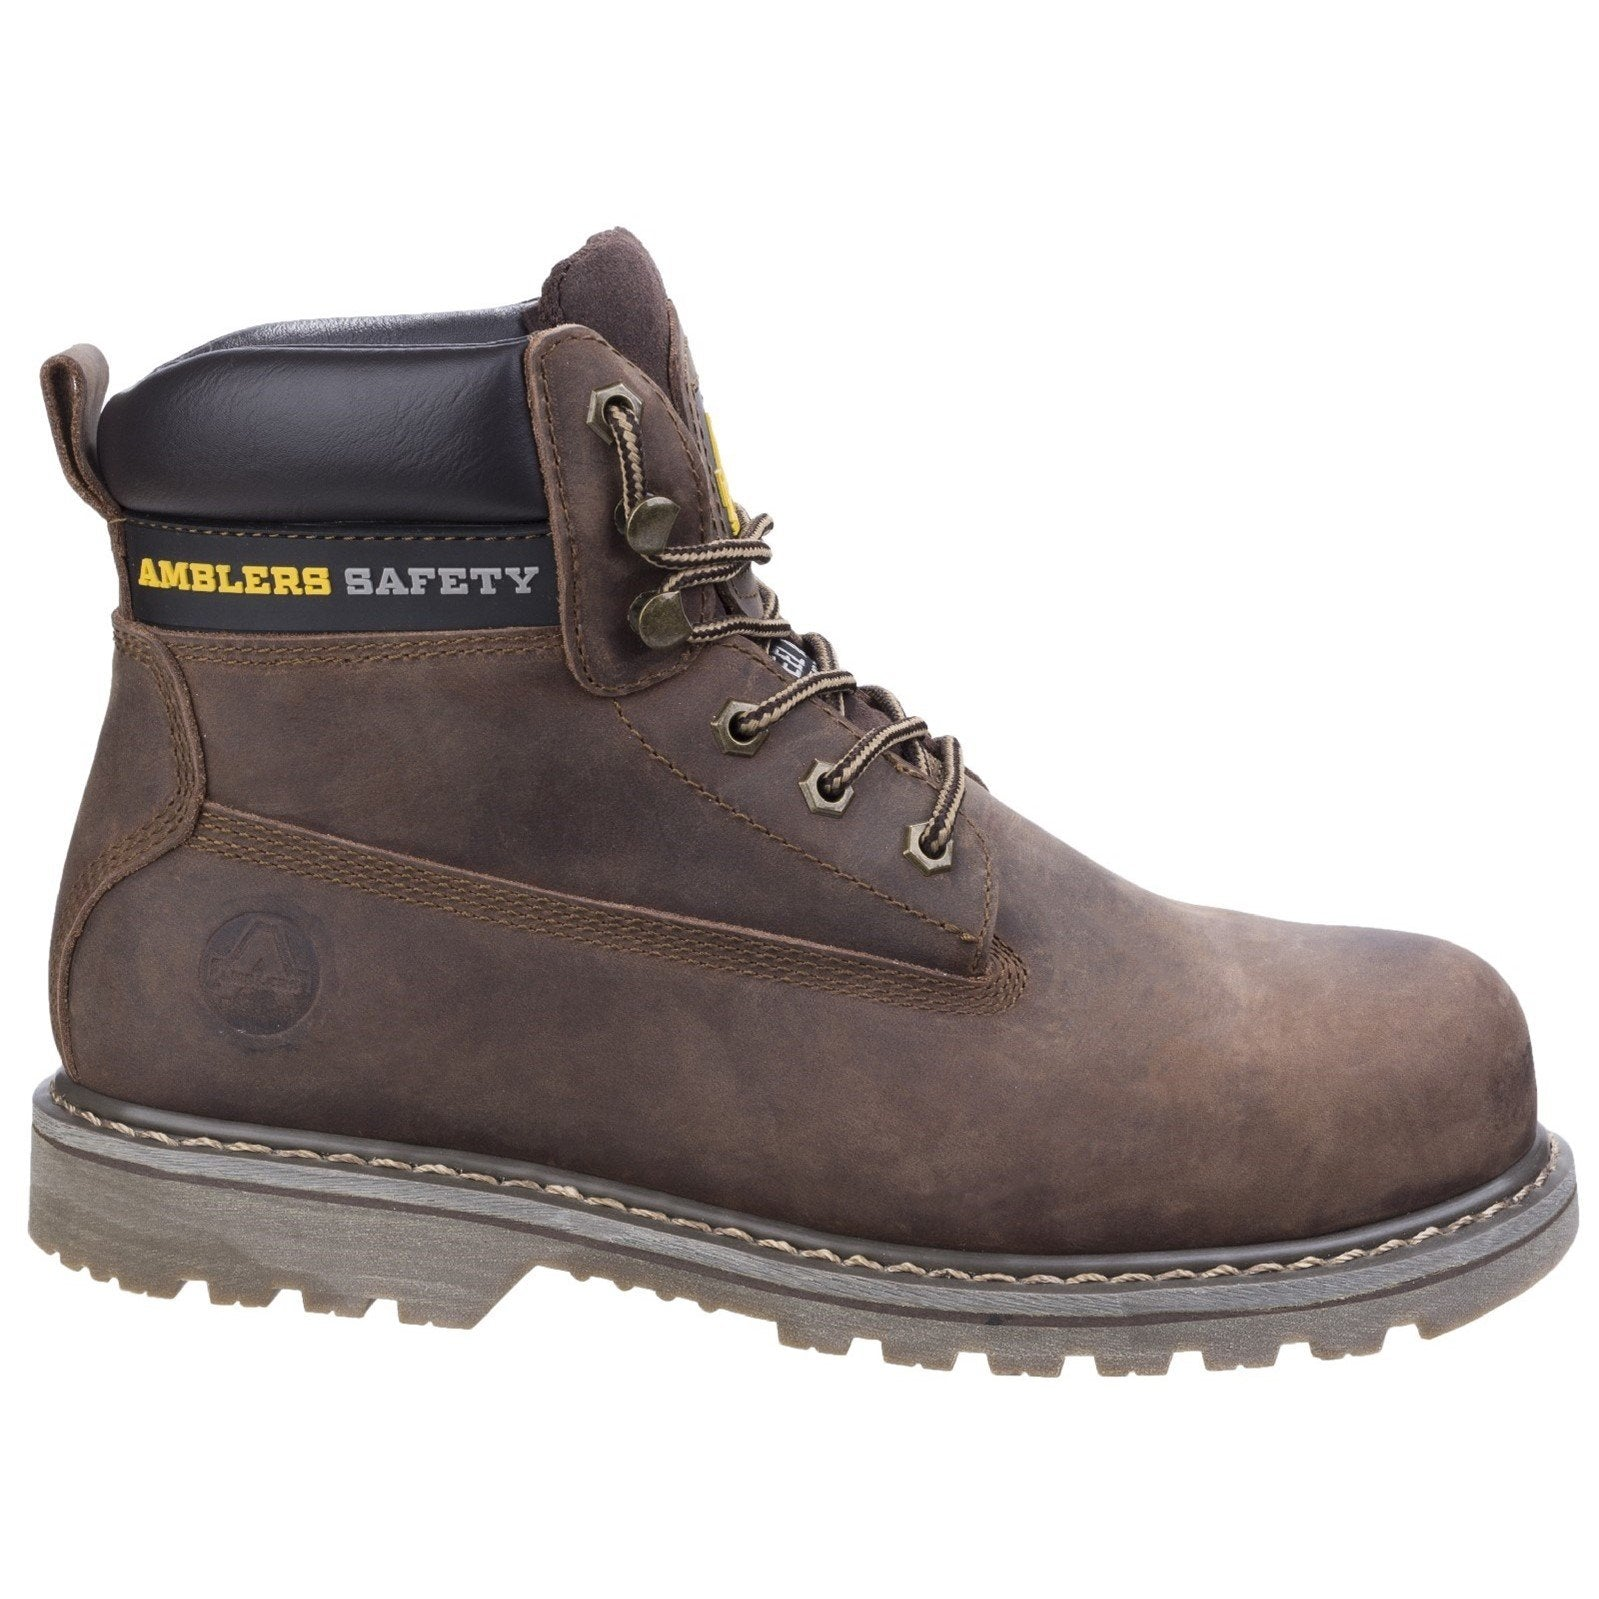 Amblers Goodyear Welted Safety Boots